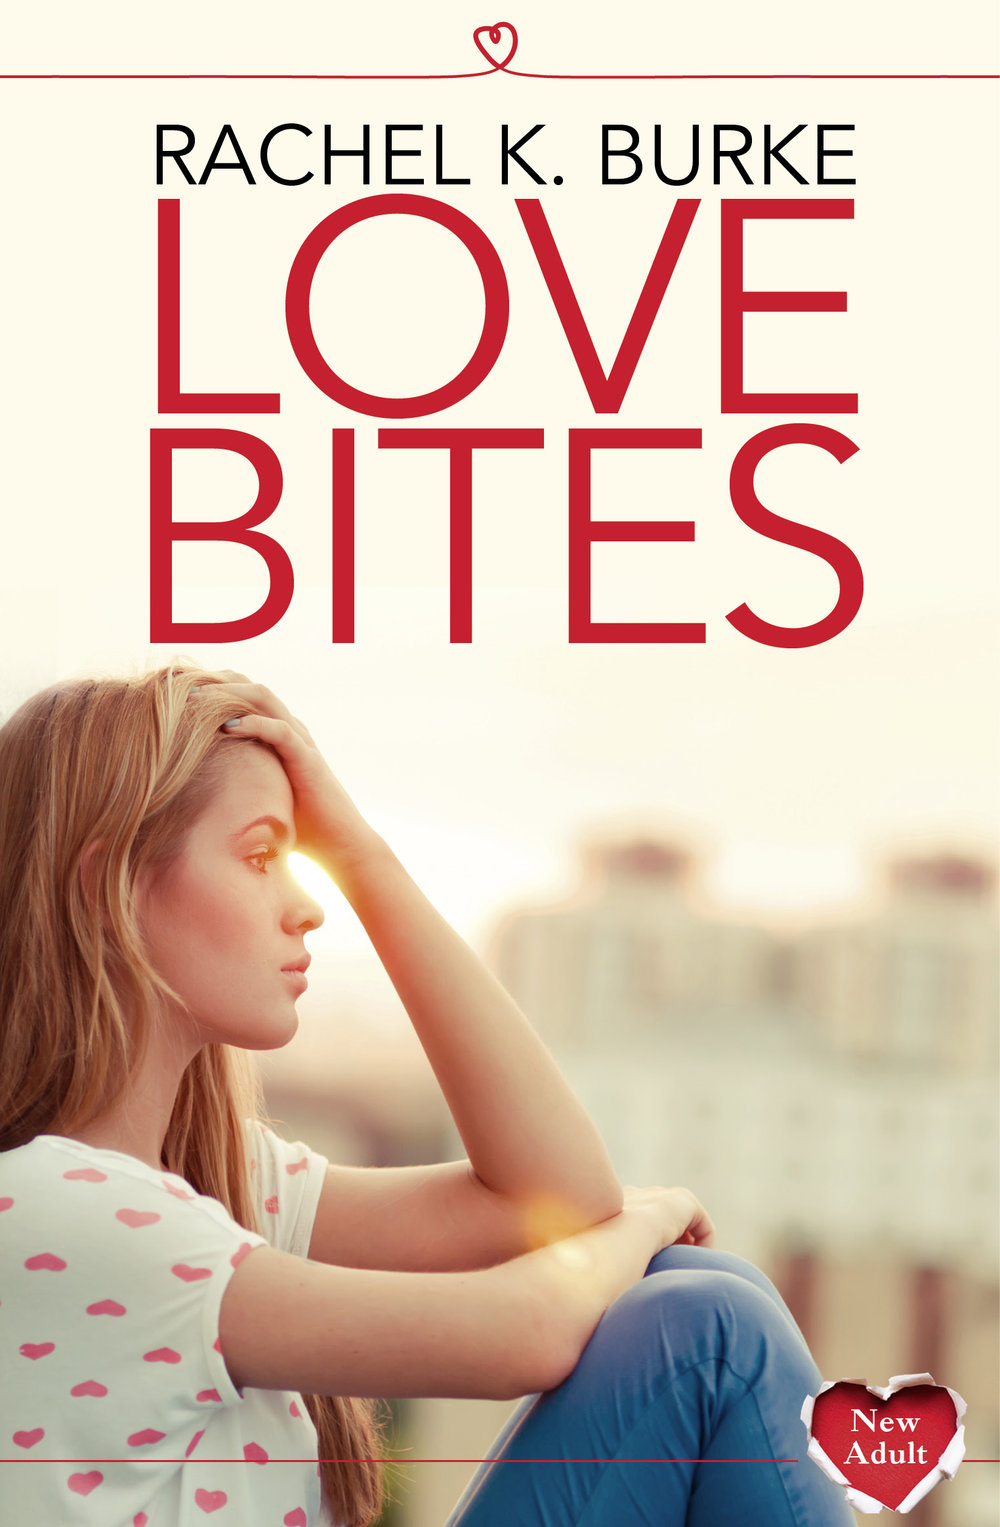 Love Bites - What do you do when you fall in love with your best friend's boyfriend?That is the question that twenty-six year-old Justine Sterling has been asking herself ever since the day she met David Whitman, her best friend Renee's boyfriend. Justine is determined to ignore her growing feelings for the irresistibly charming David, until one night, when she finds herself in the bed of the one person she should stay away from.When Justine and David's affair ends in heartbreak, Justine is forced to repair the damaged friendship with her best friend. In doing so, she learns that right and wrong decisions aren't always black and white, and sometimes you have to follow your heart to see where it leads.